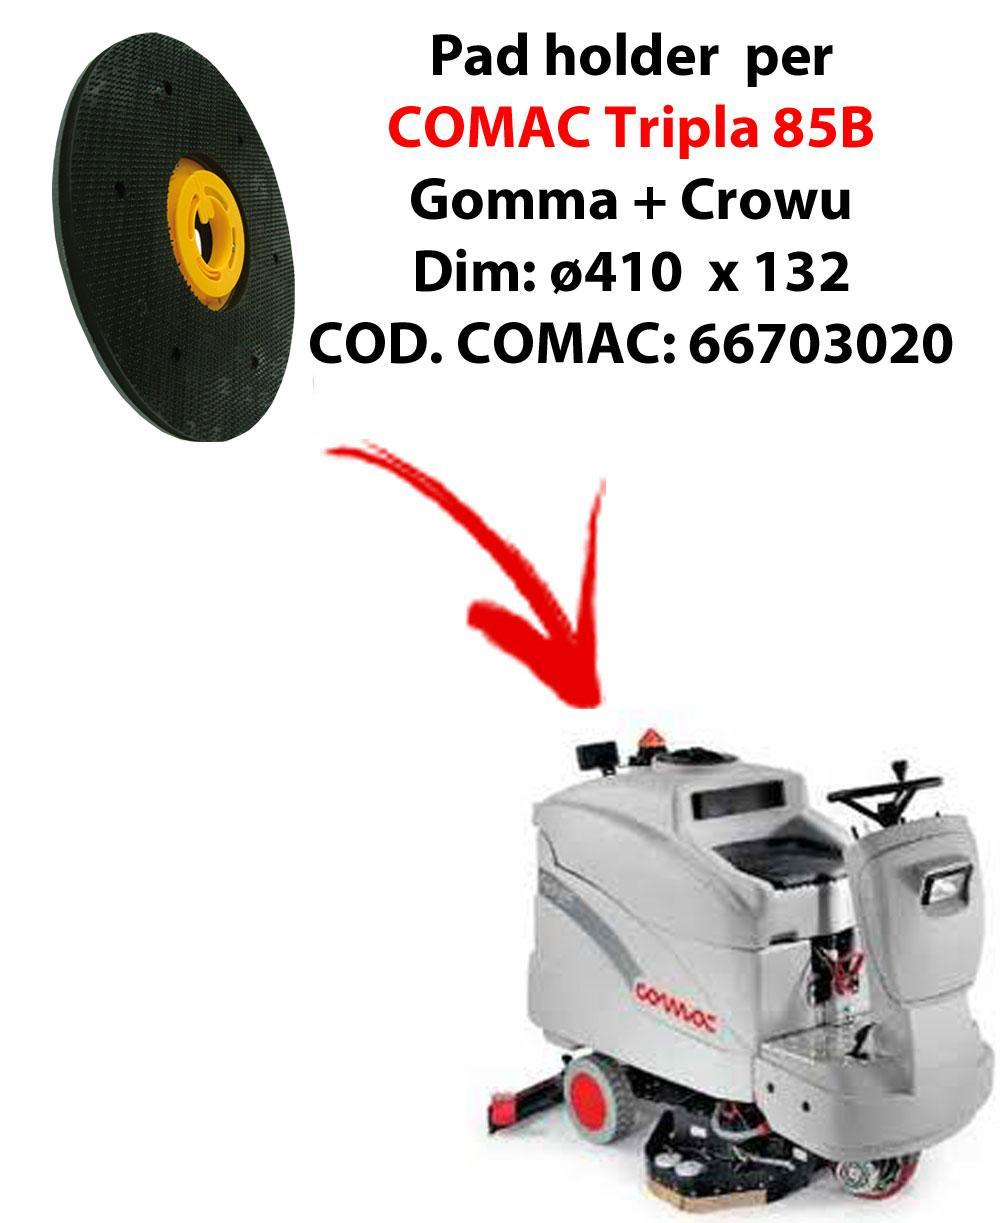 PAD HOLDER for scrubber dryer COMAC Tripla 85B. Code comac: 66703020